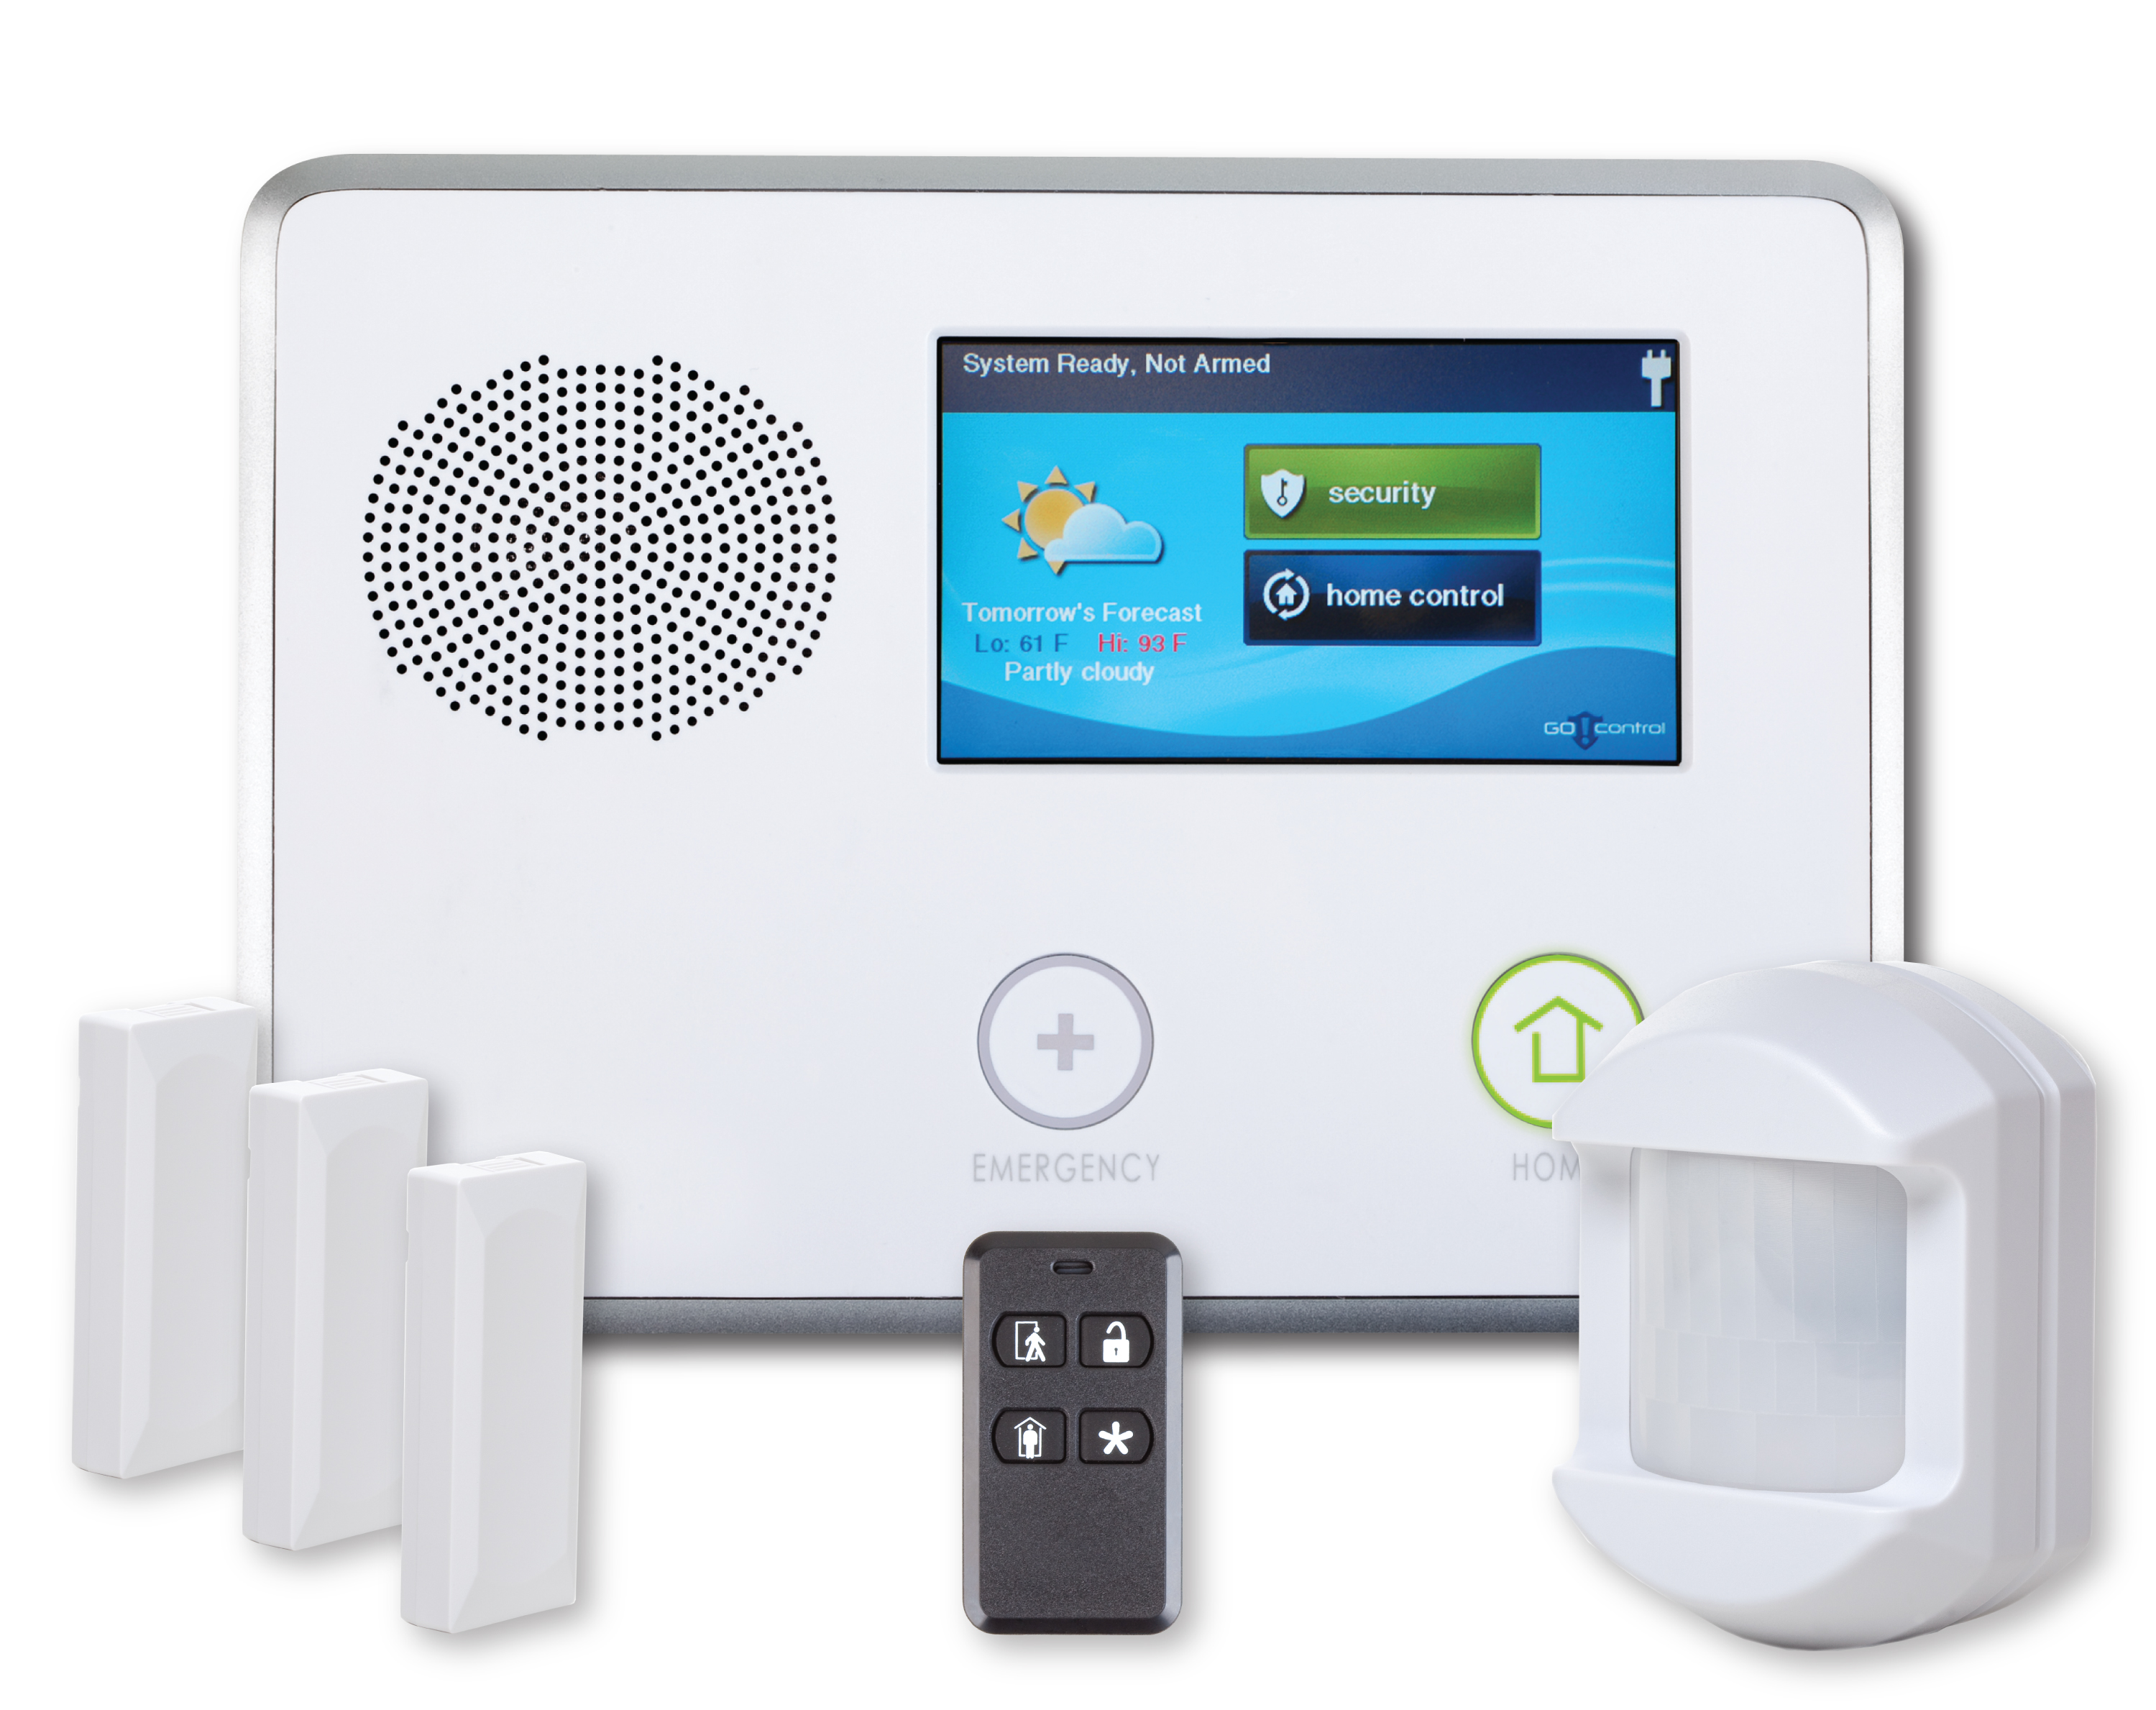 LifeShield Home Security equipment